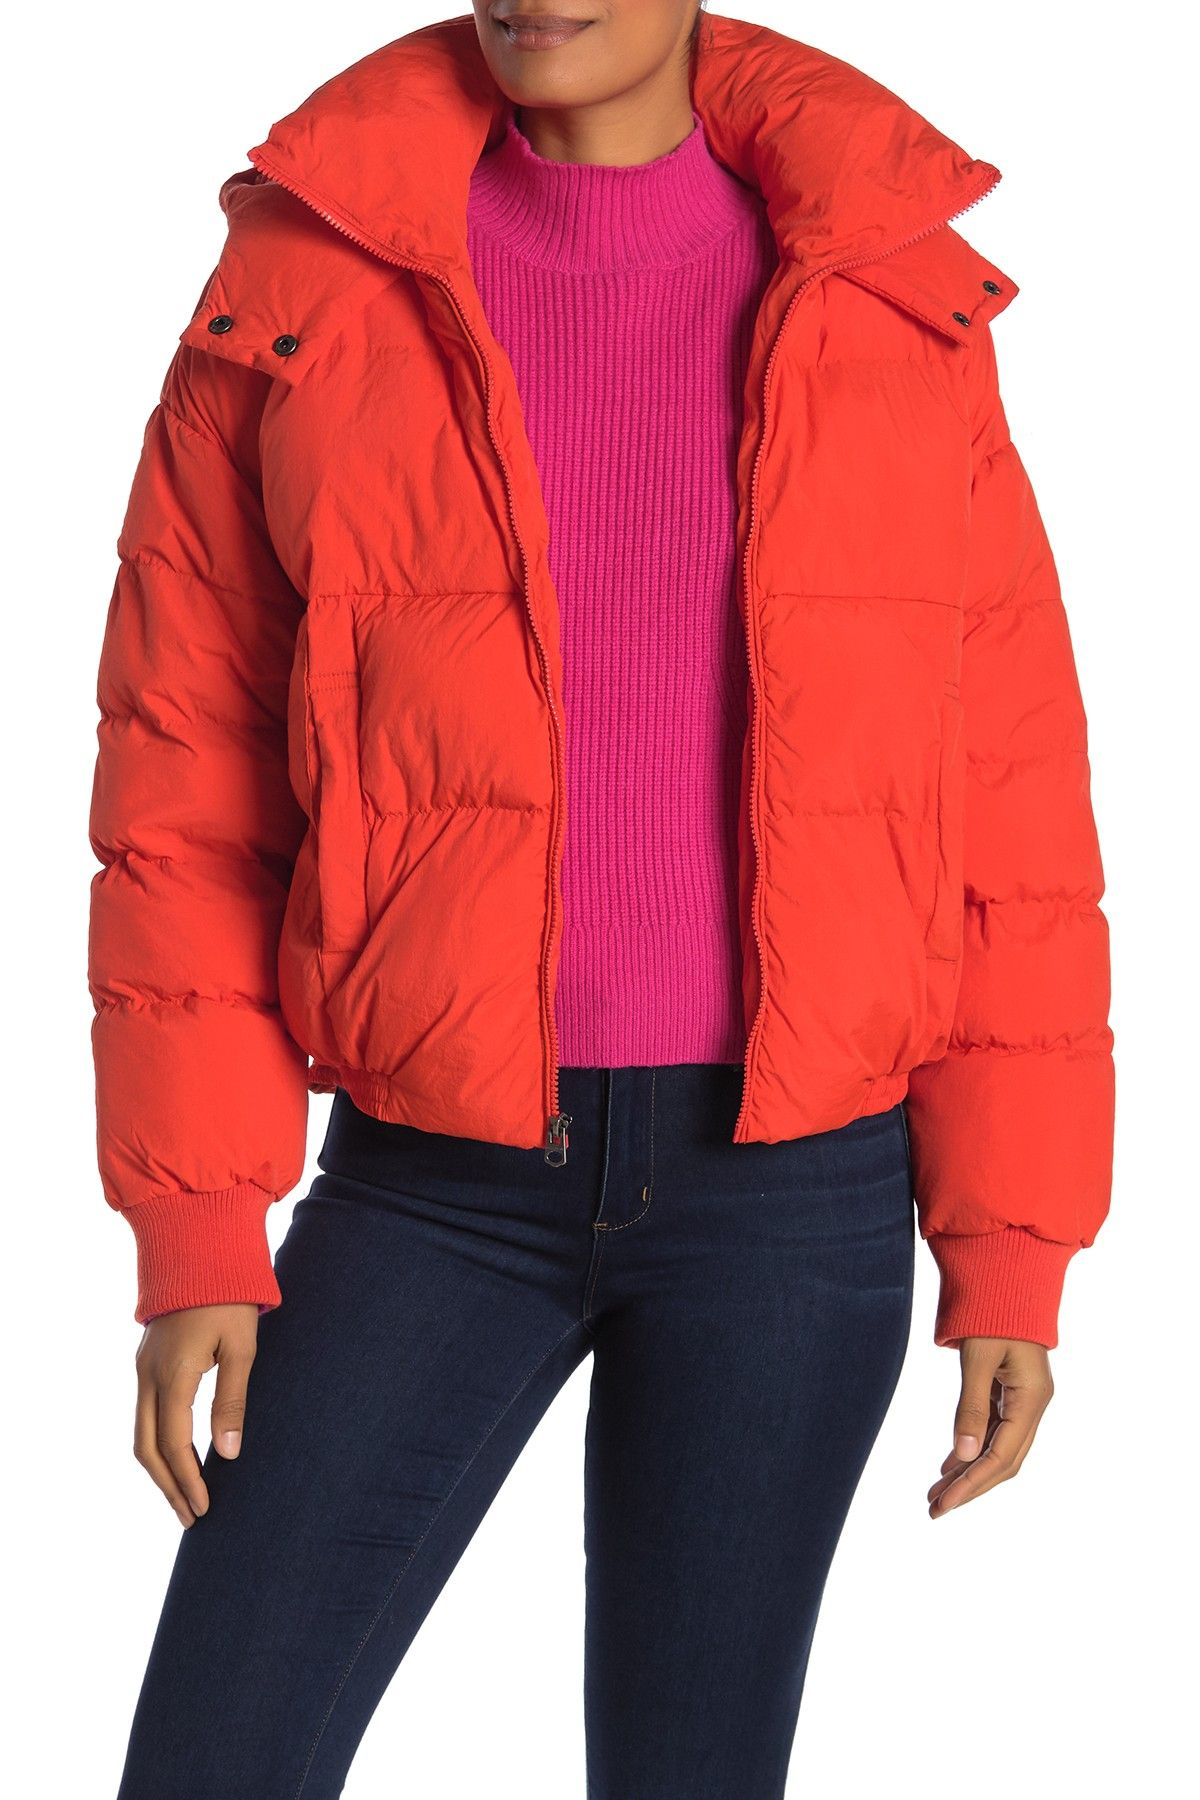 Lucky Brand Short Puffer Jacket Nordstrom Rack Jackets Branded Shorts Nordstrom Outfit [ 1800 x 1200 Pixel ]